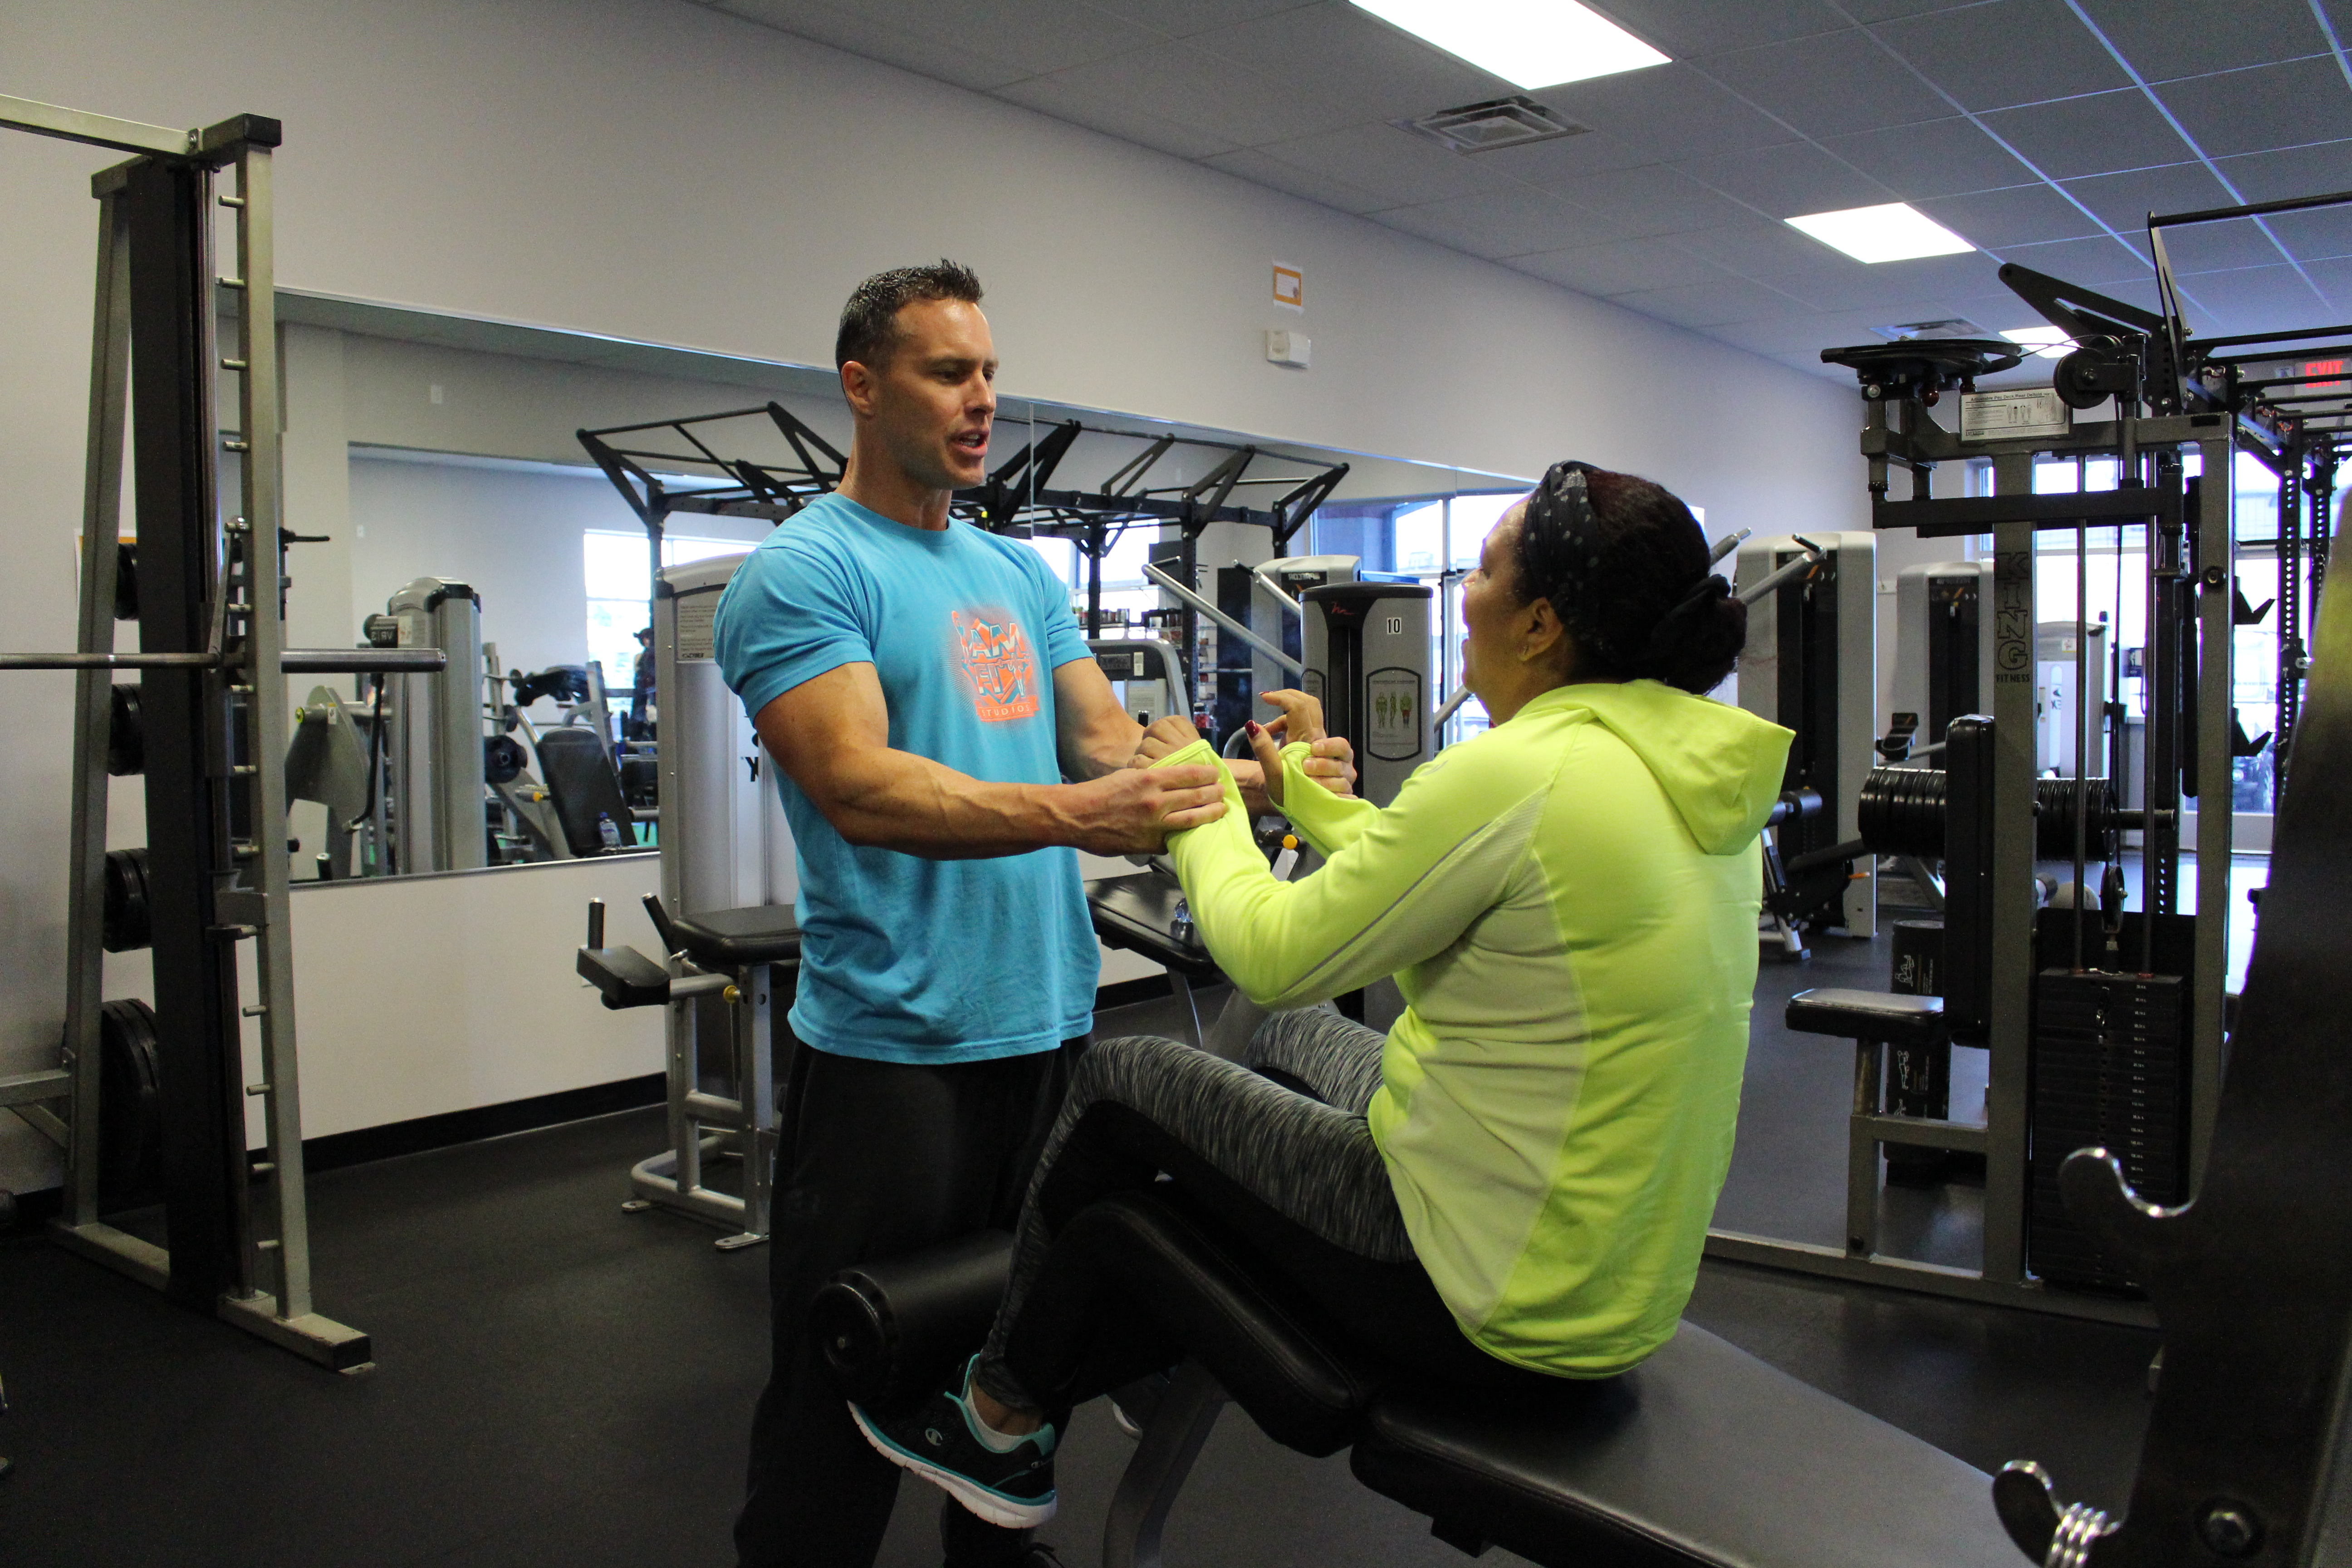 IMG_0066.JPG Call us for your Free Fitness Assessment -CALL NOW: 610-816-775